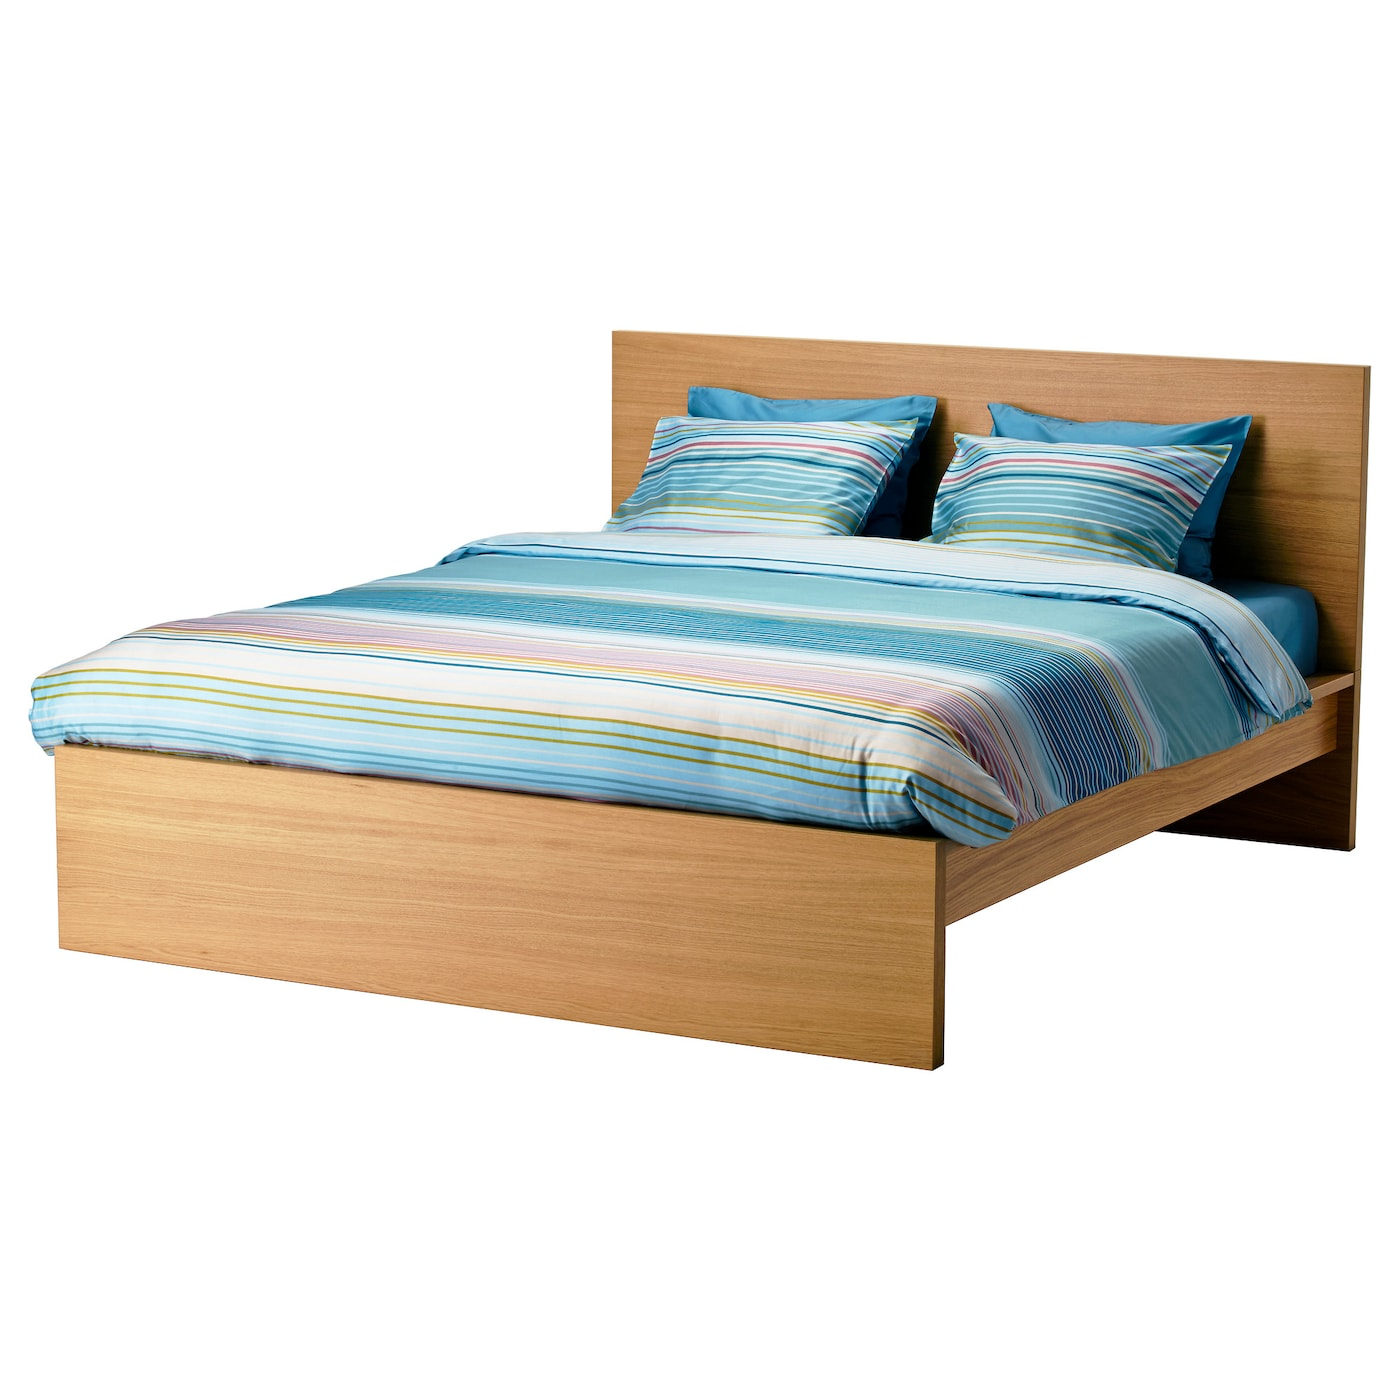 Malm bed frame high oak veneer lur y standard double ikea - Ikea wood futon frame ...